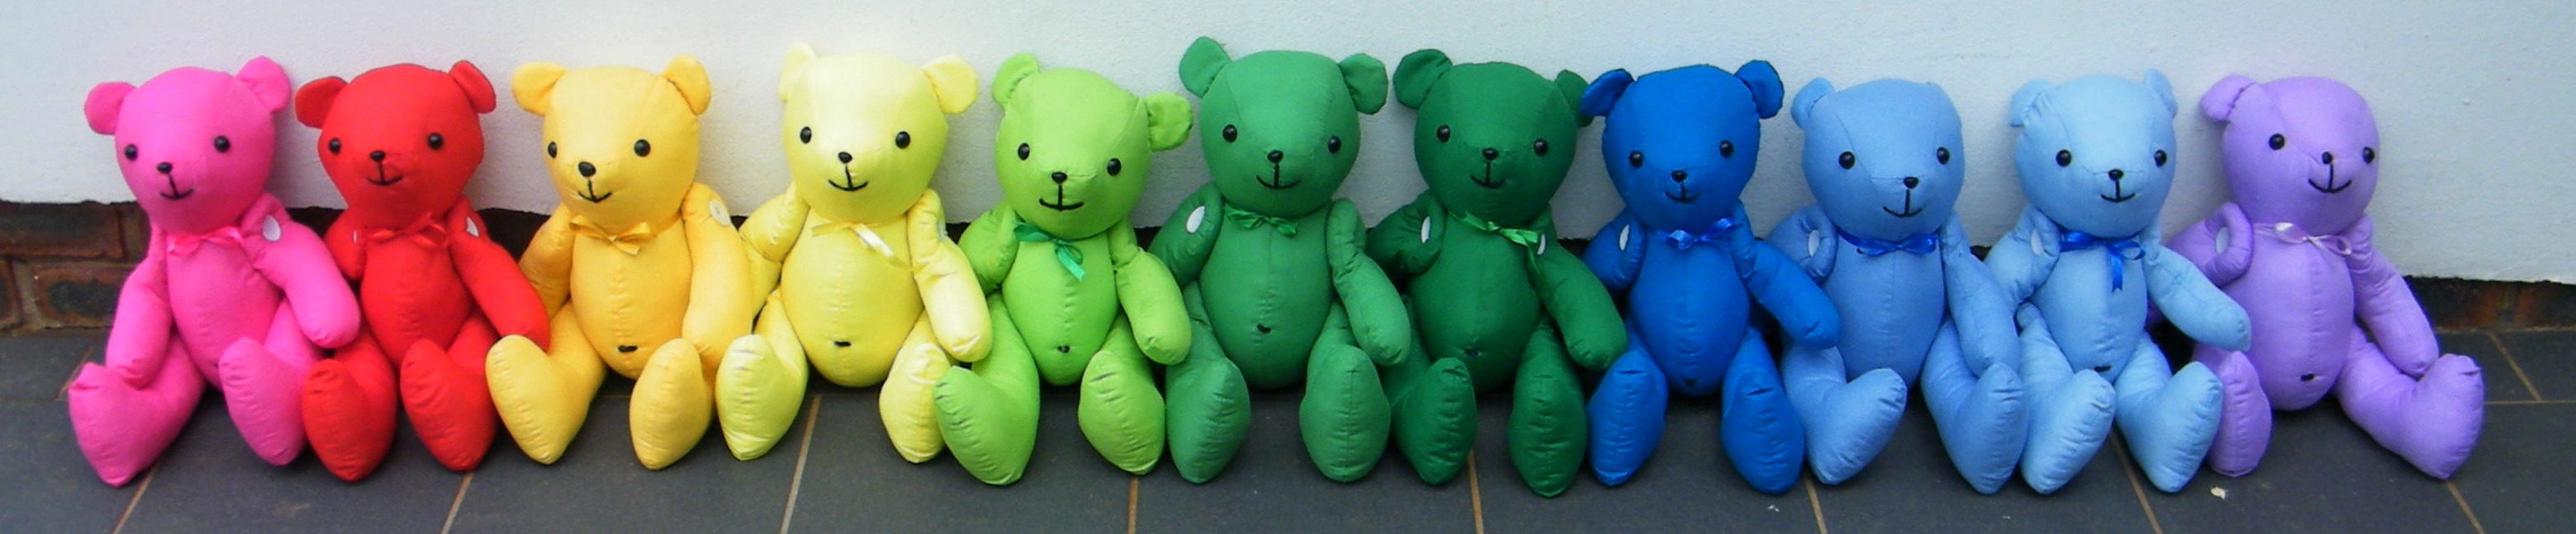 bobbi bears